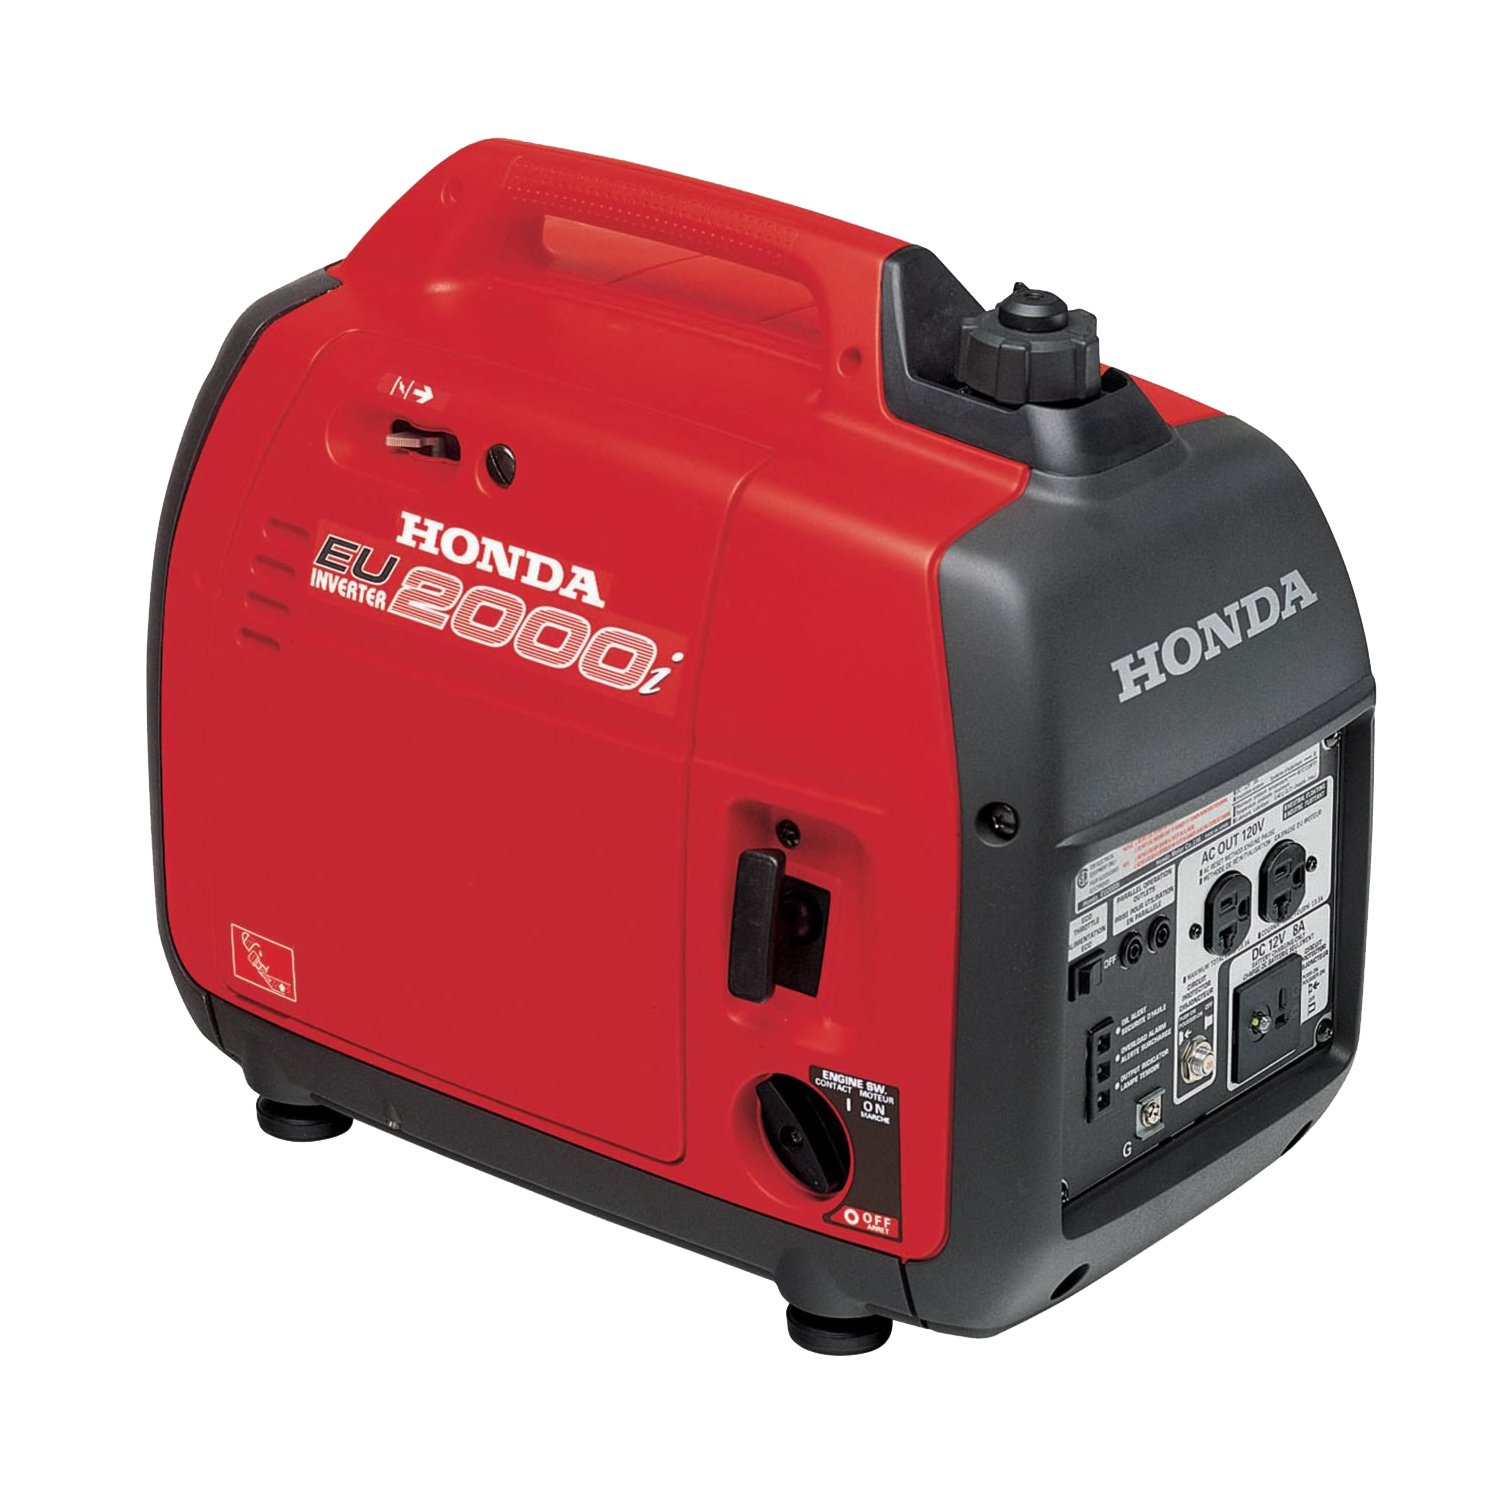 Honda Red Eu2000i quiet generator